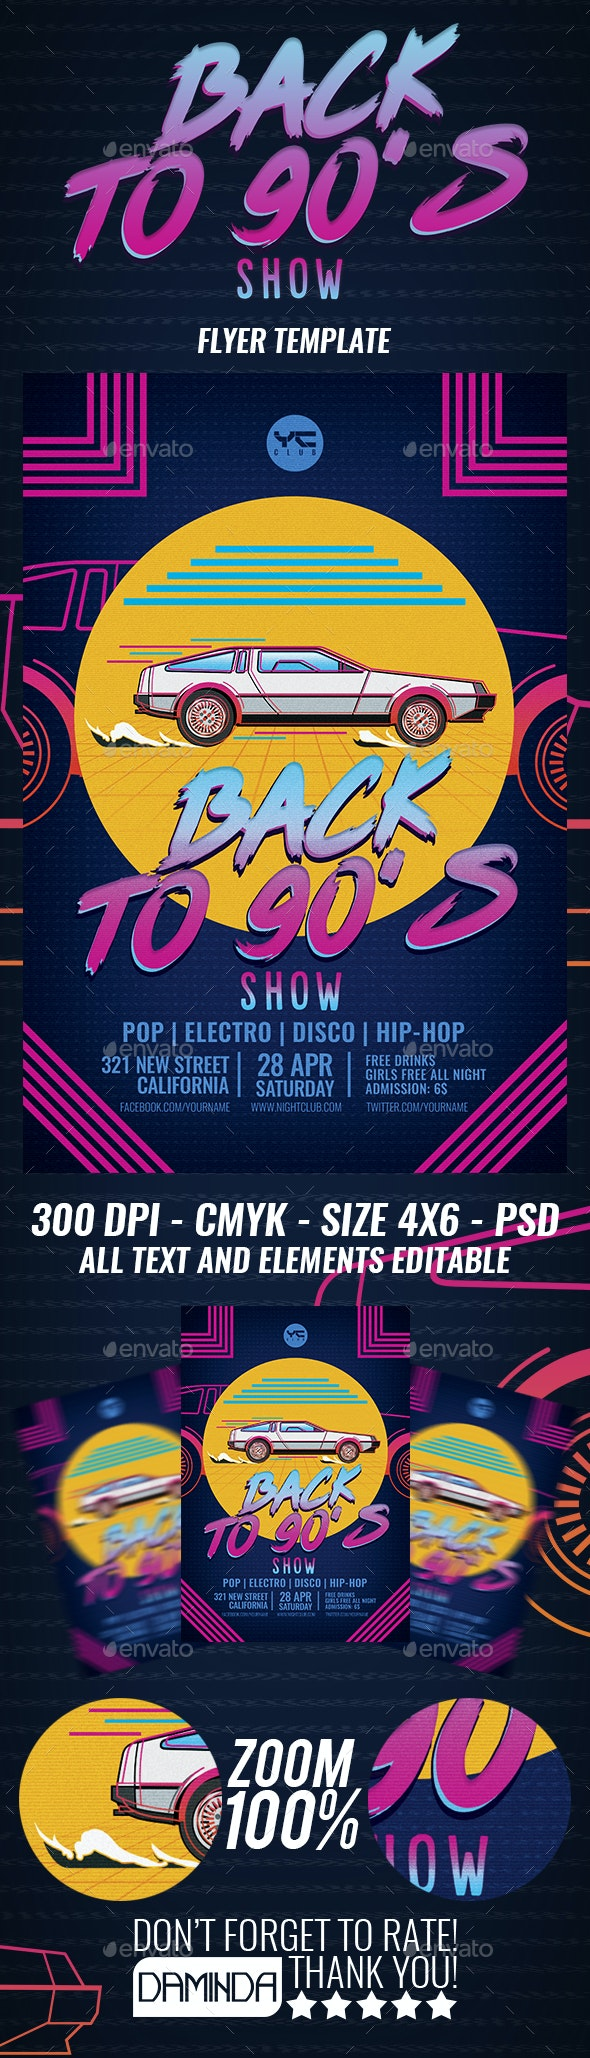 Back to the 90's show Flyer Template - Clubs & Parties Events